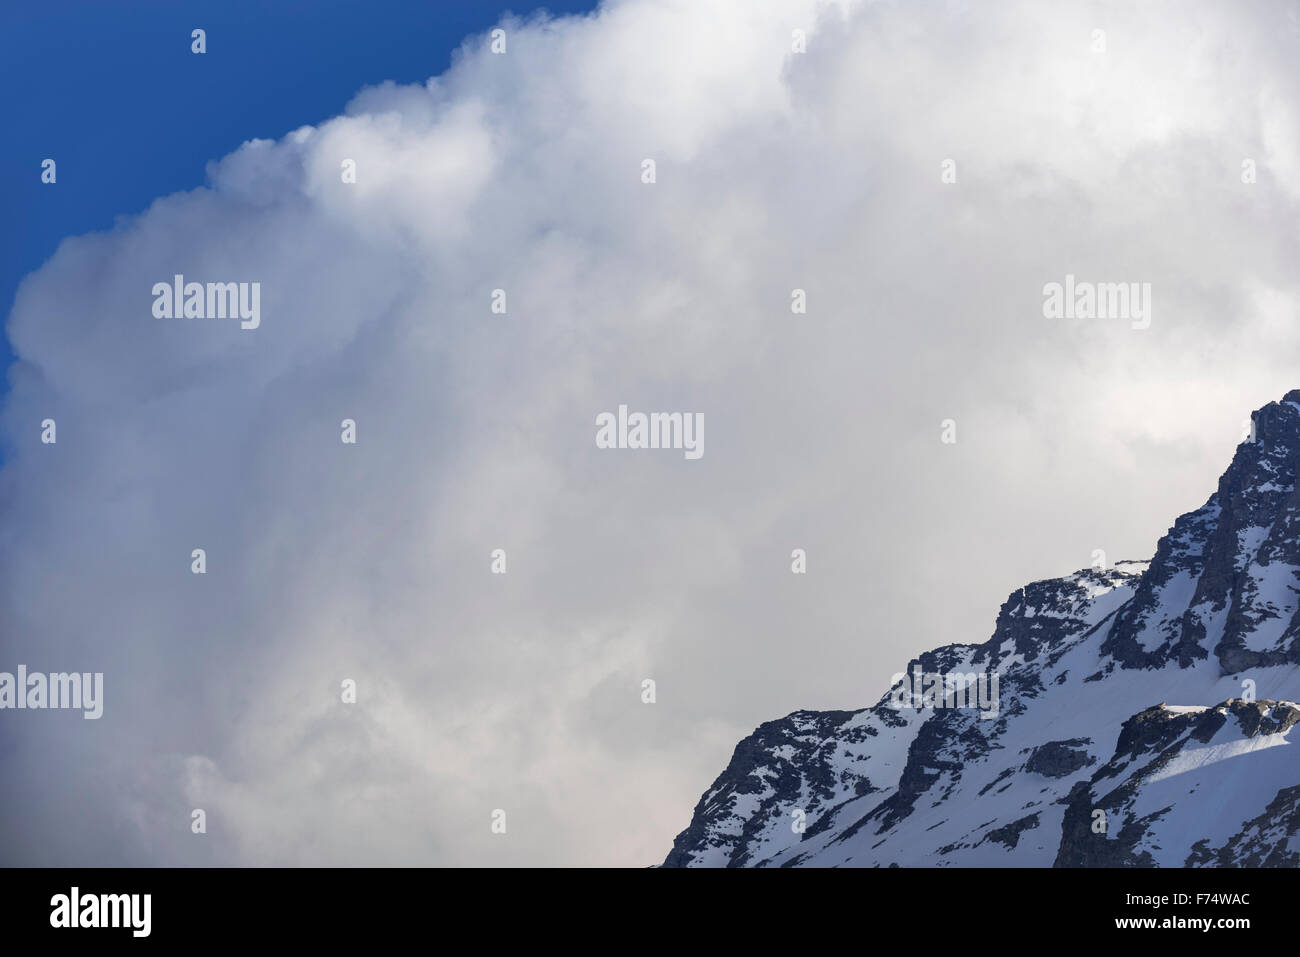 Cumulonimbus cloud developping behind mountain in the Alps - Stock Image